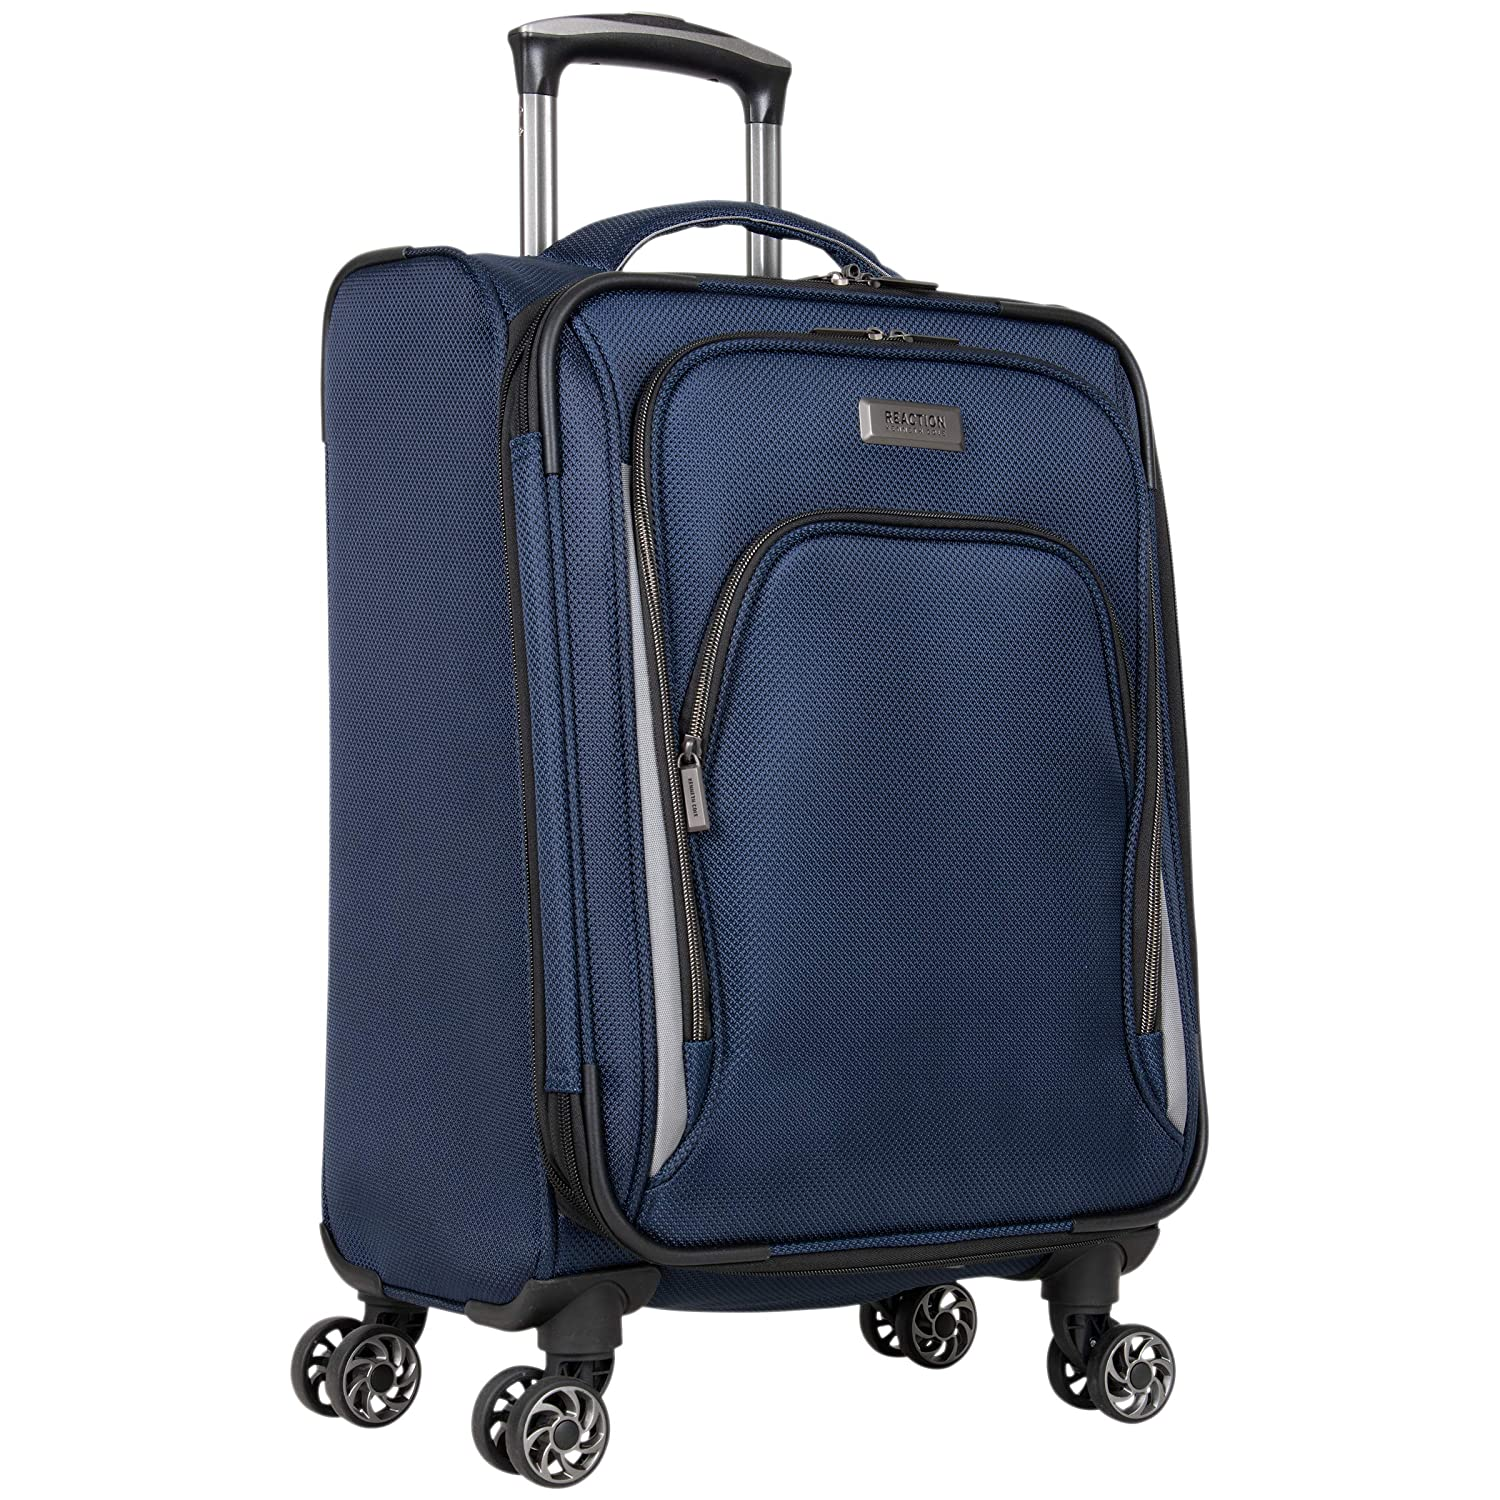 Kenneth Cole Reaction Cloud City 20 Lightweight Softside Expandable 8-Wheel Spinner Carry-On Travel Suitcase, Navy